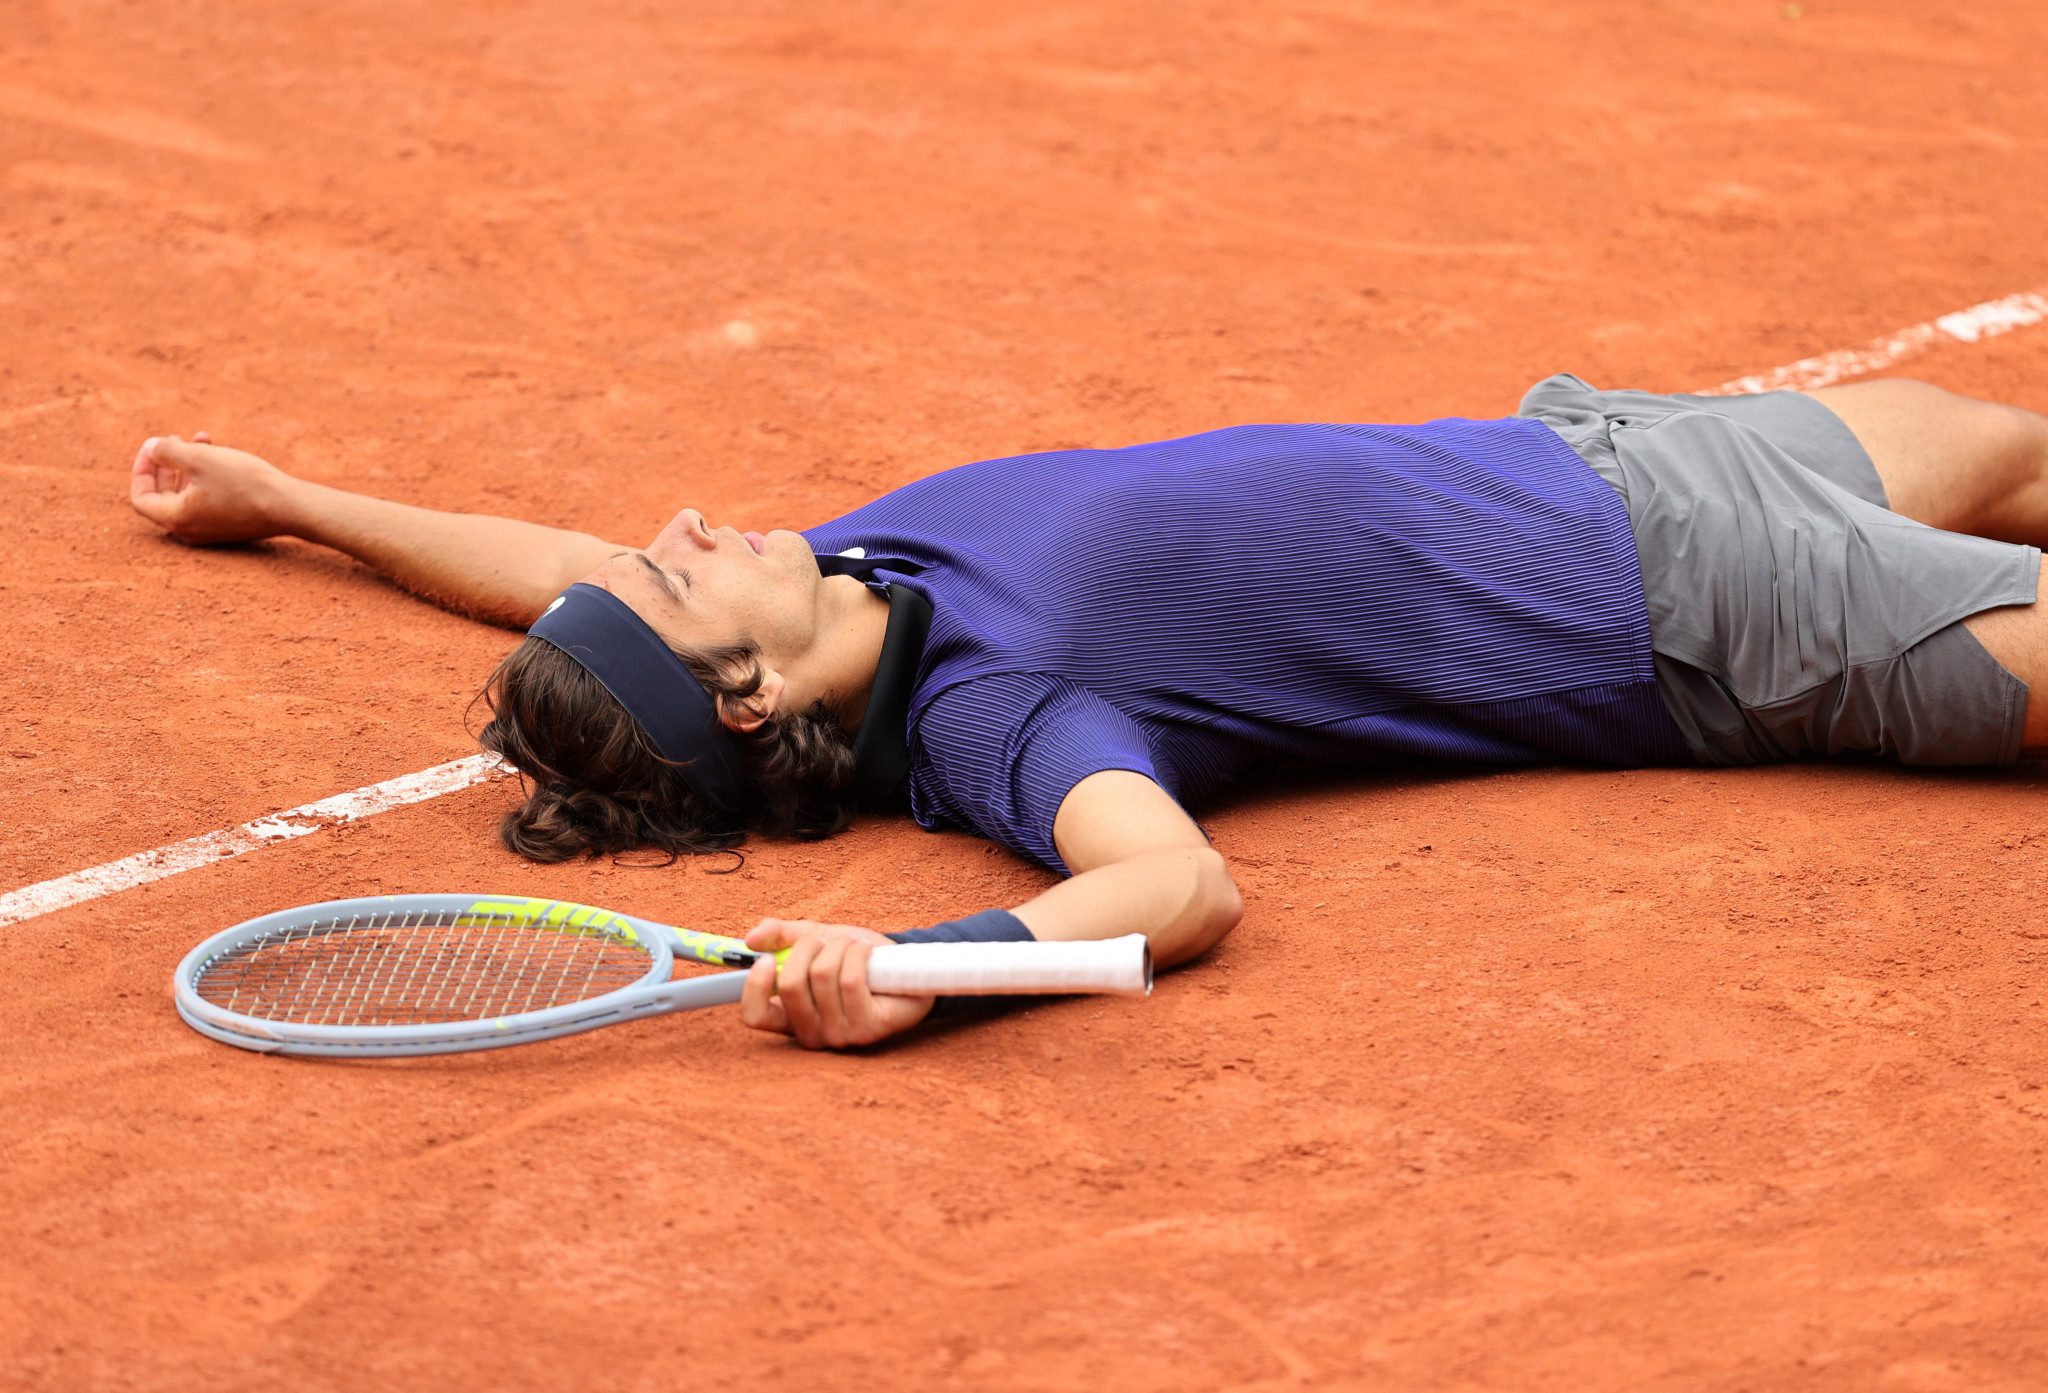 Lorenzo Musetti falls flat on his back after pulling off a five-set win over compatriot Marco Cecchinato ©Getty Images